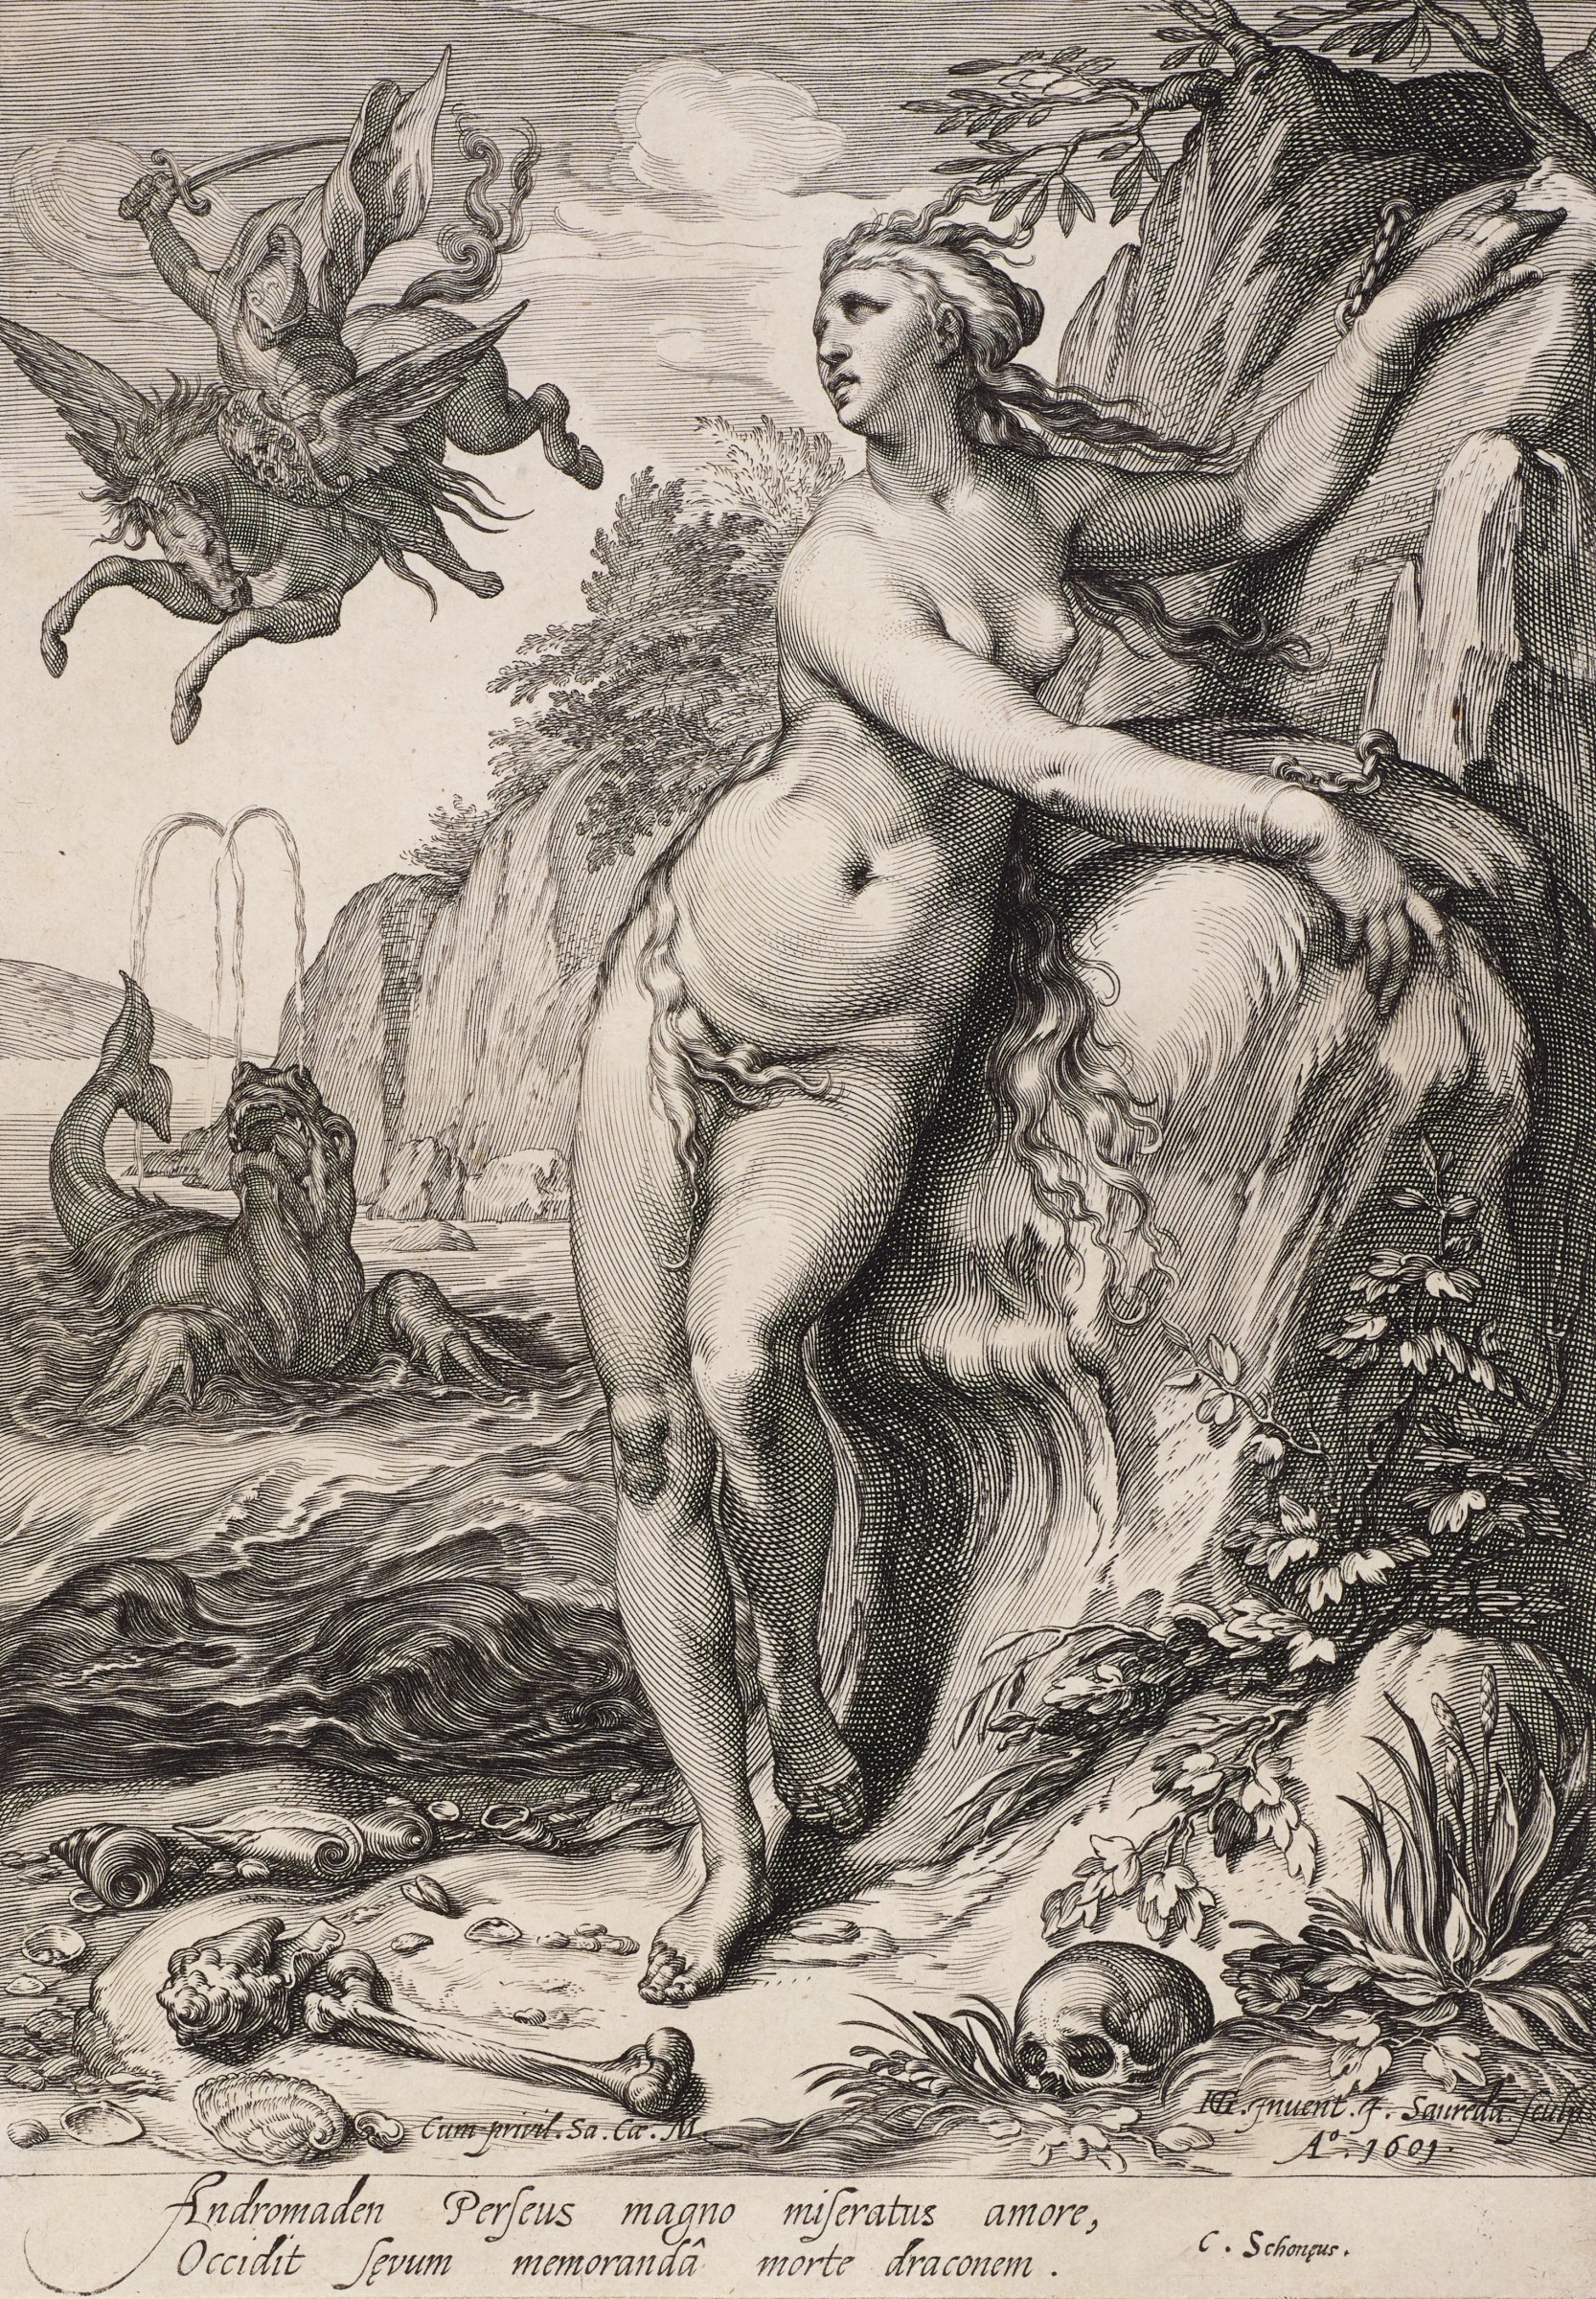 Andromeda stands nude with both arms chained to a bolder. Around her are scattered human bones and sea shells. Behind her Perseus fights the sea creature.